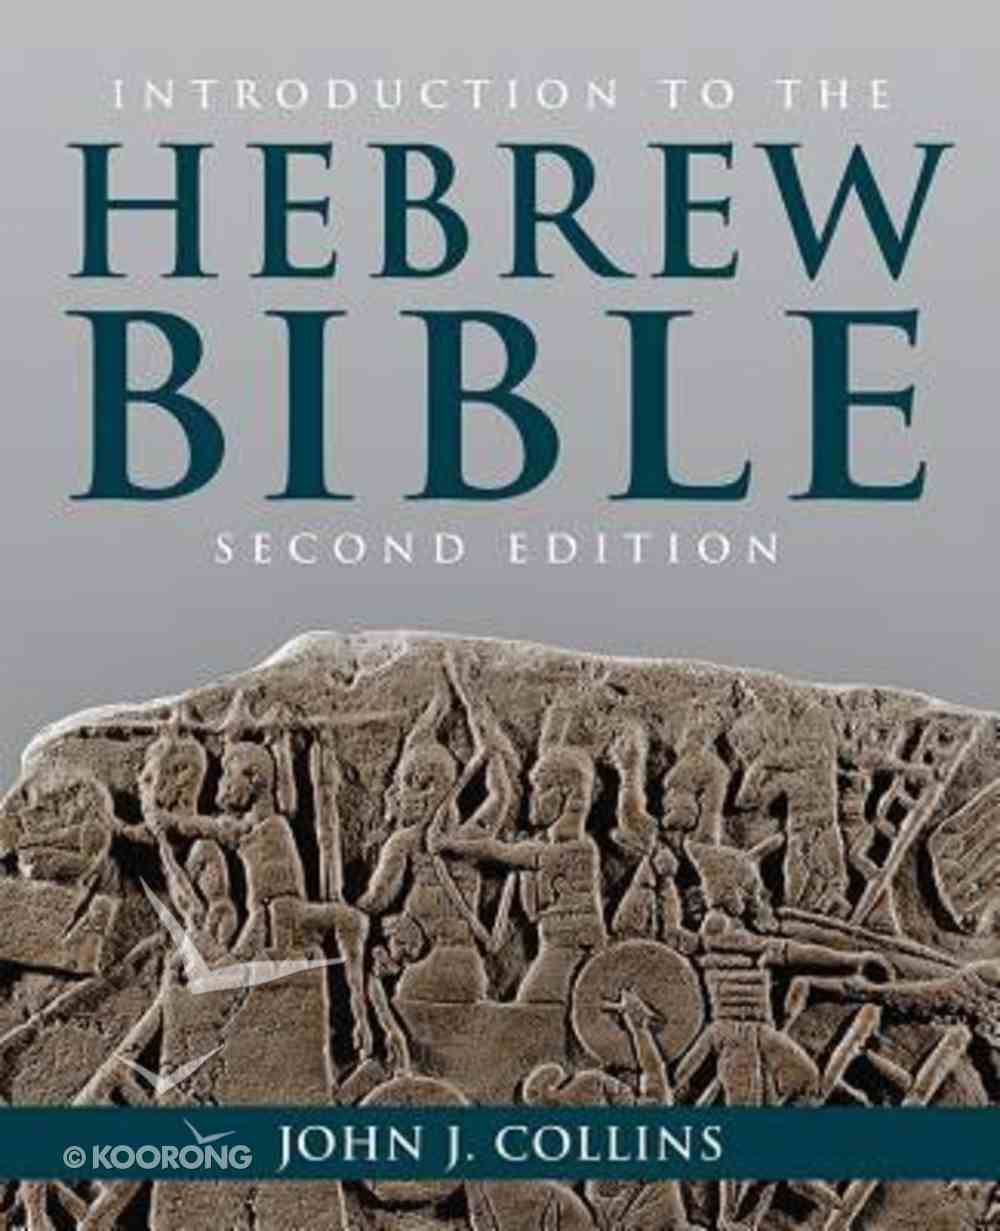 Introduction to the Hebrew Bible (Second Edition) Paperback